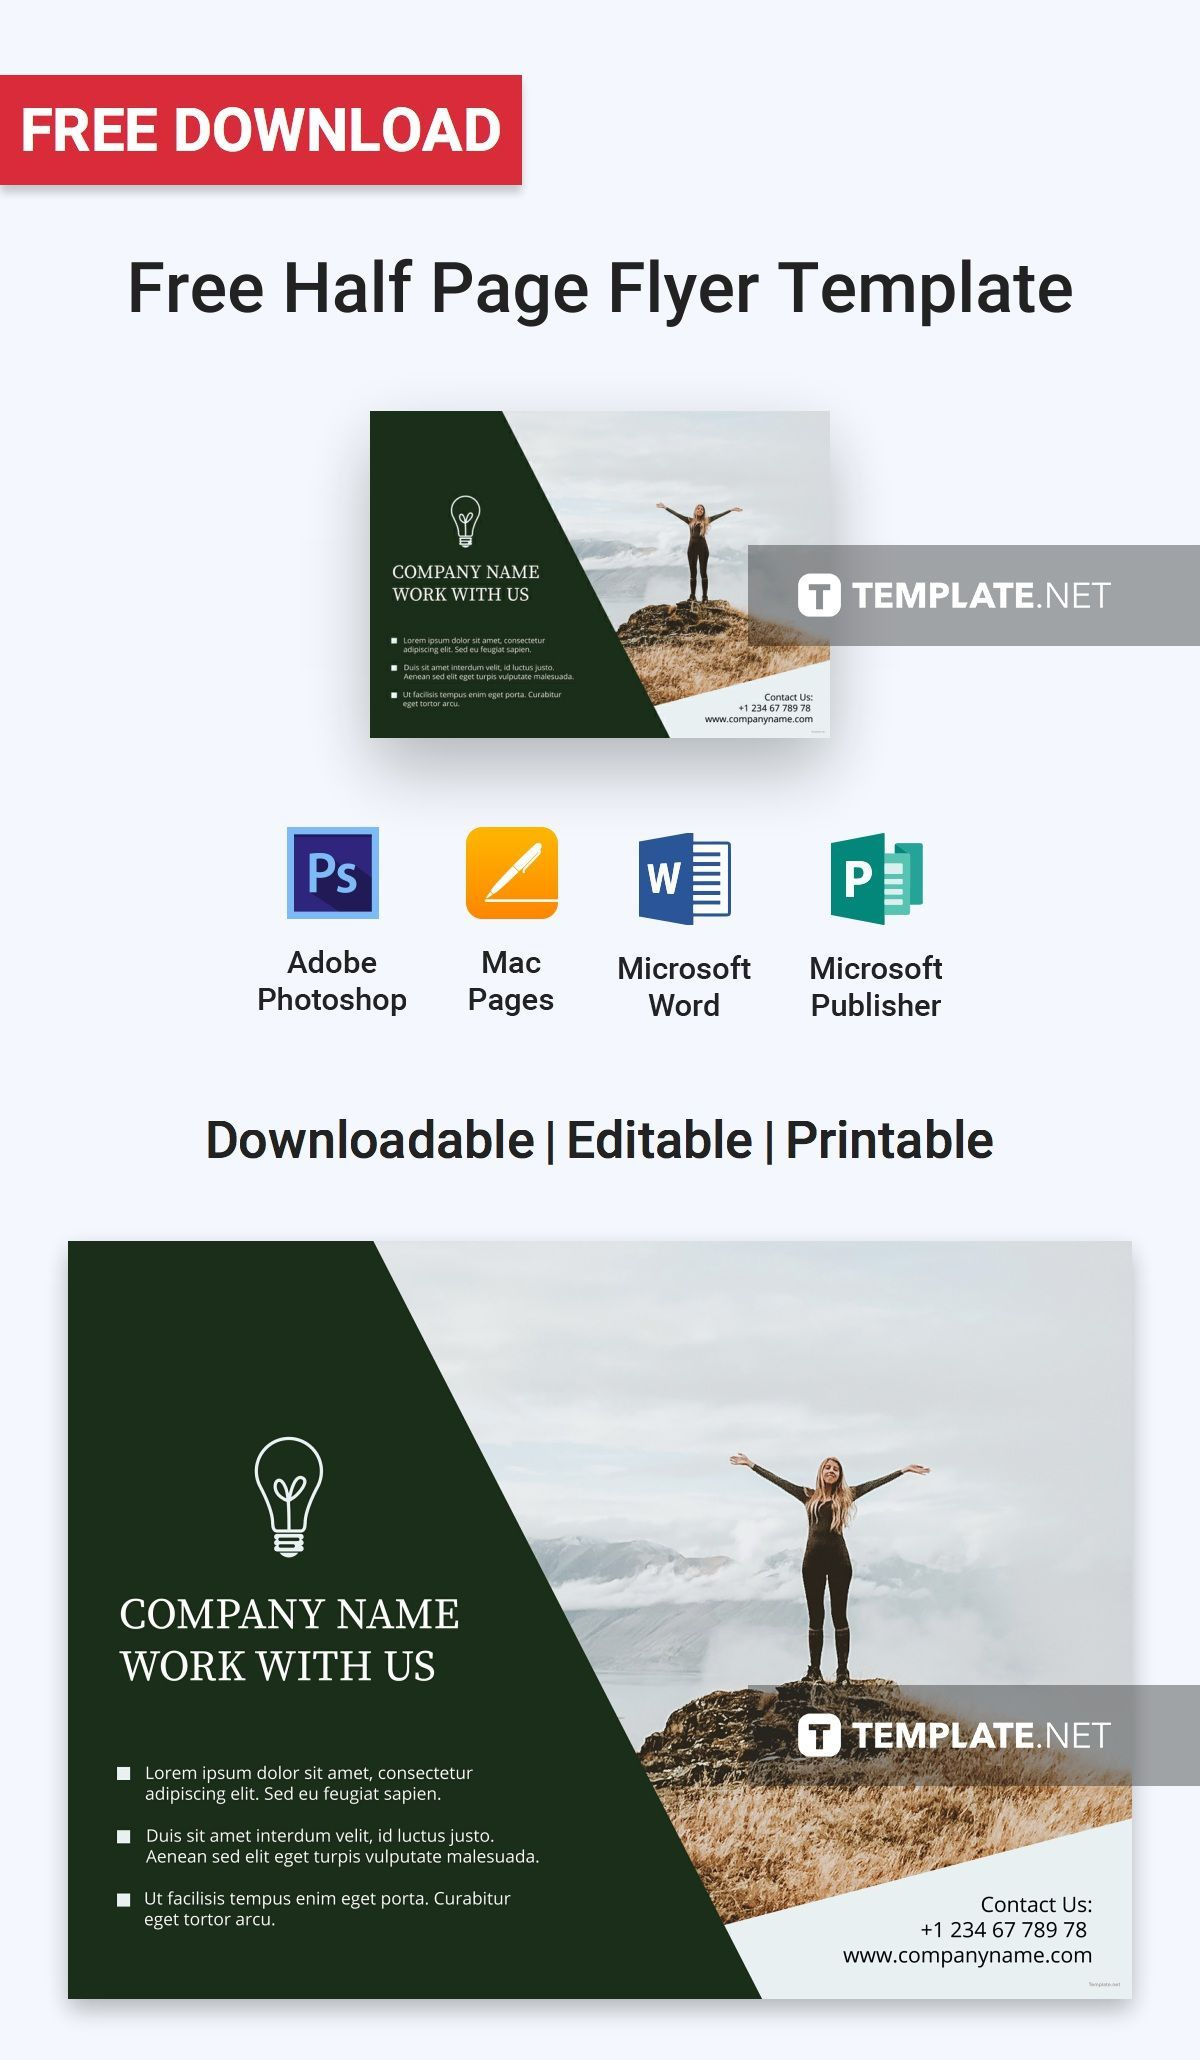 006 Astounding Half Page Flyer Template Photo  Templates Google Doc Free Word CanvaFull